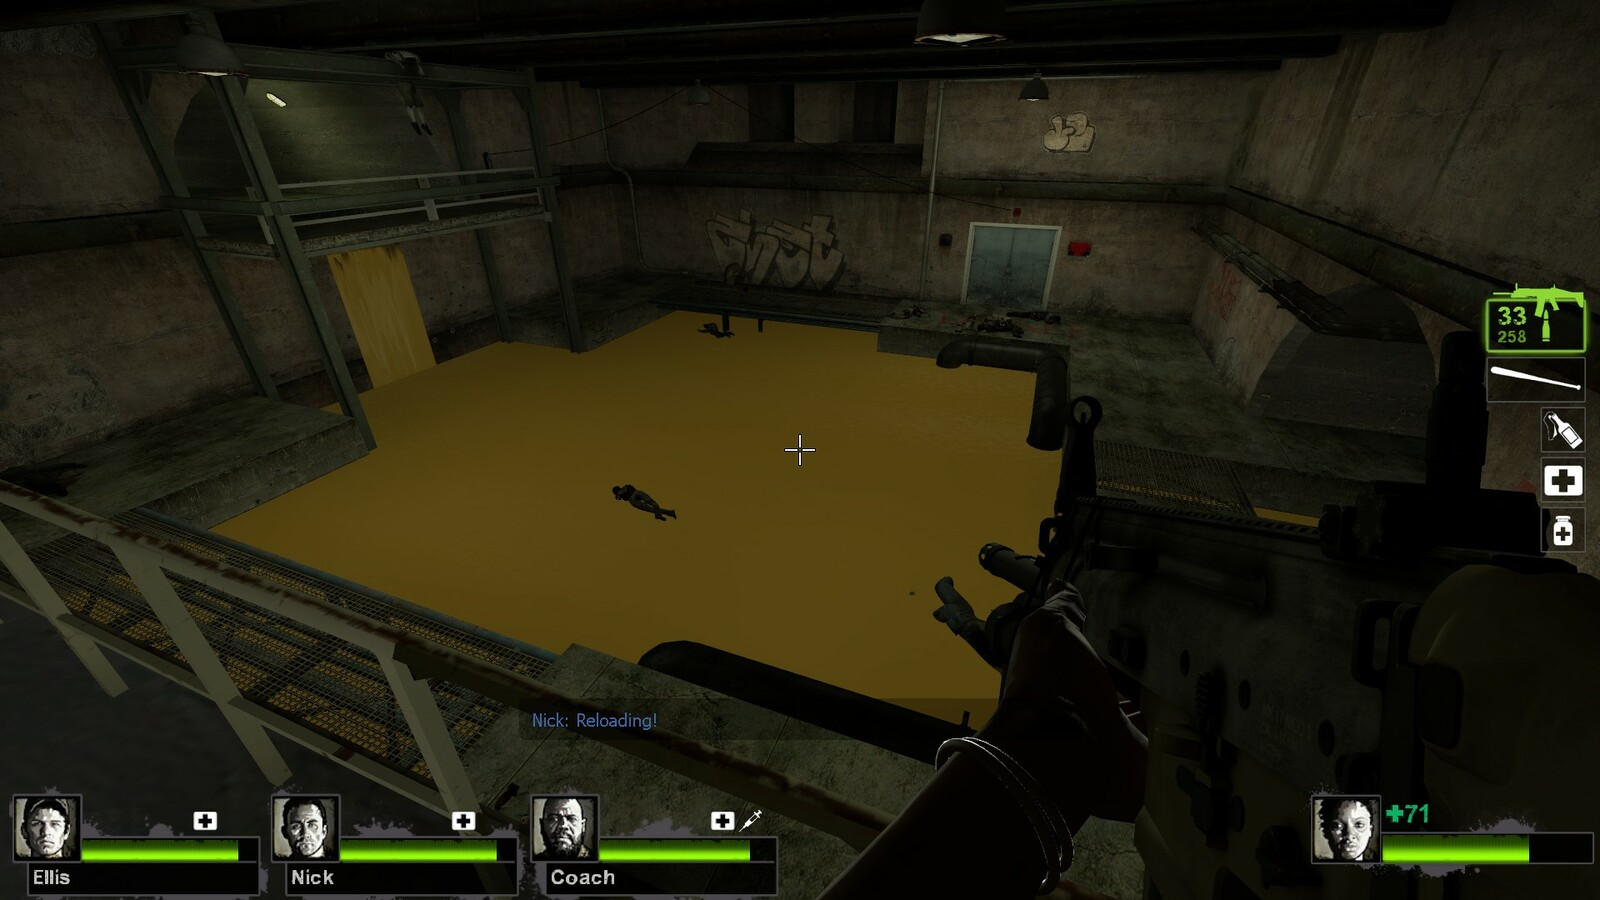 Players will make their way through until they reach this central area. This is where they must fight a tank in this center area